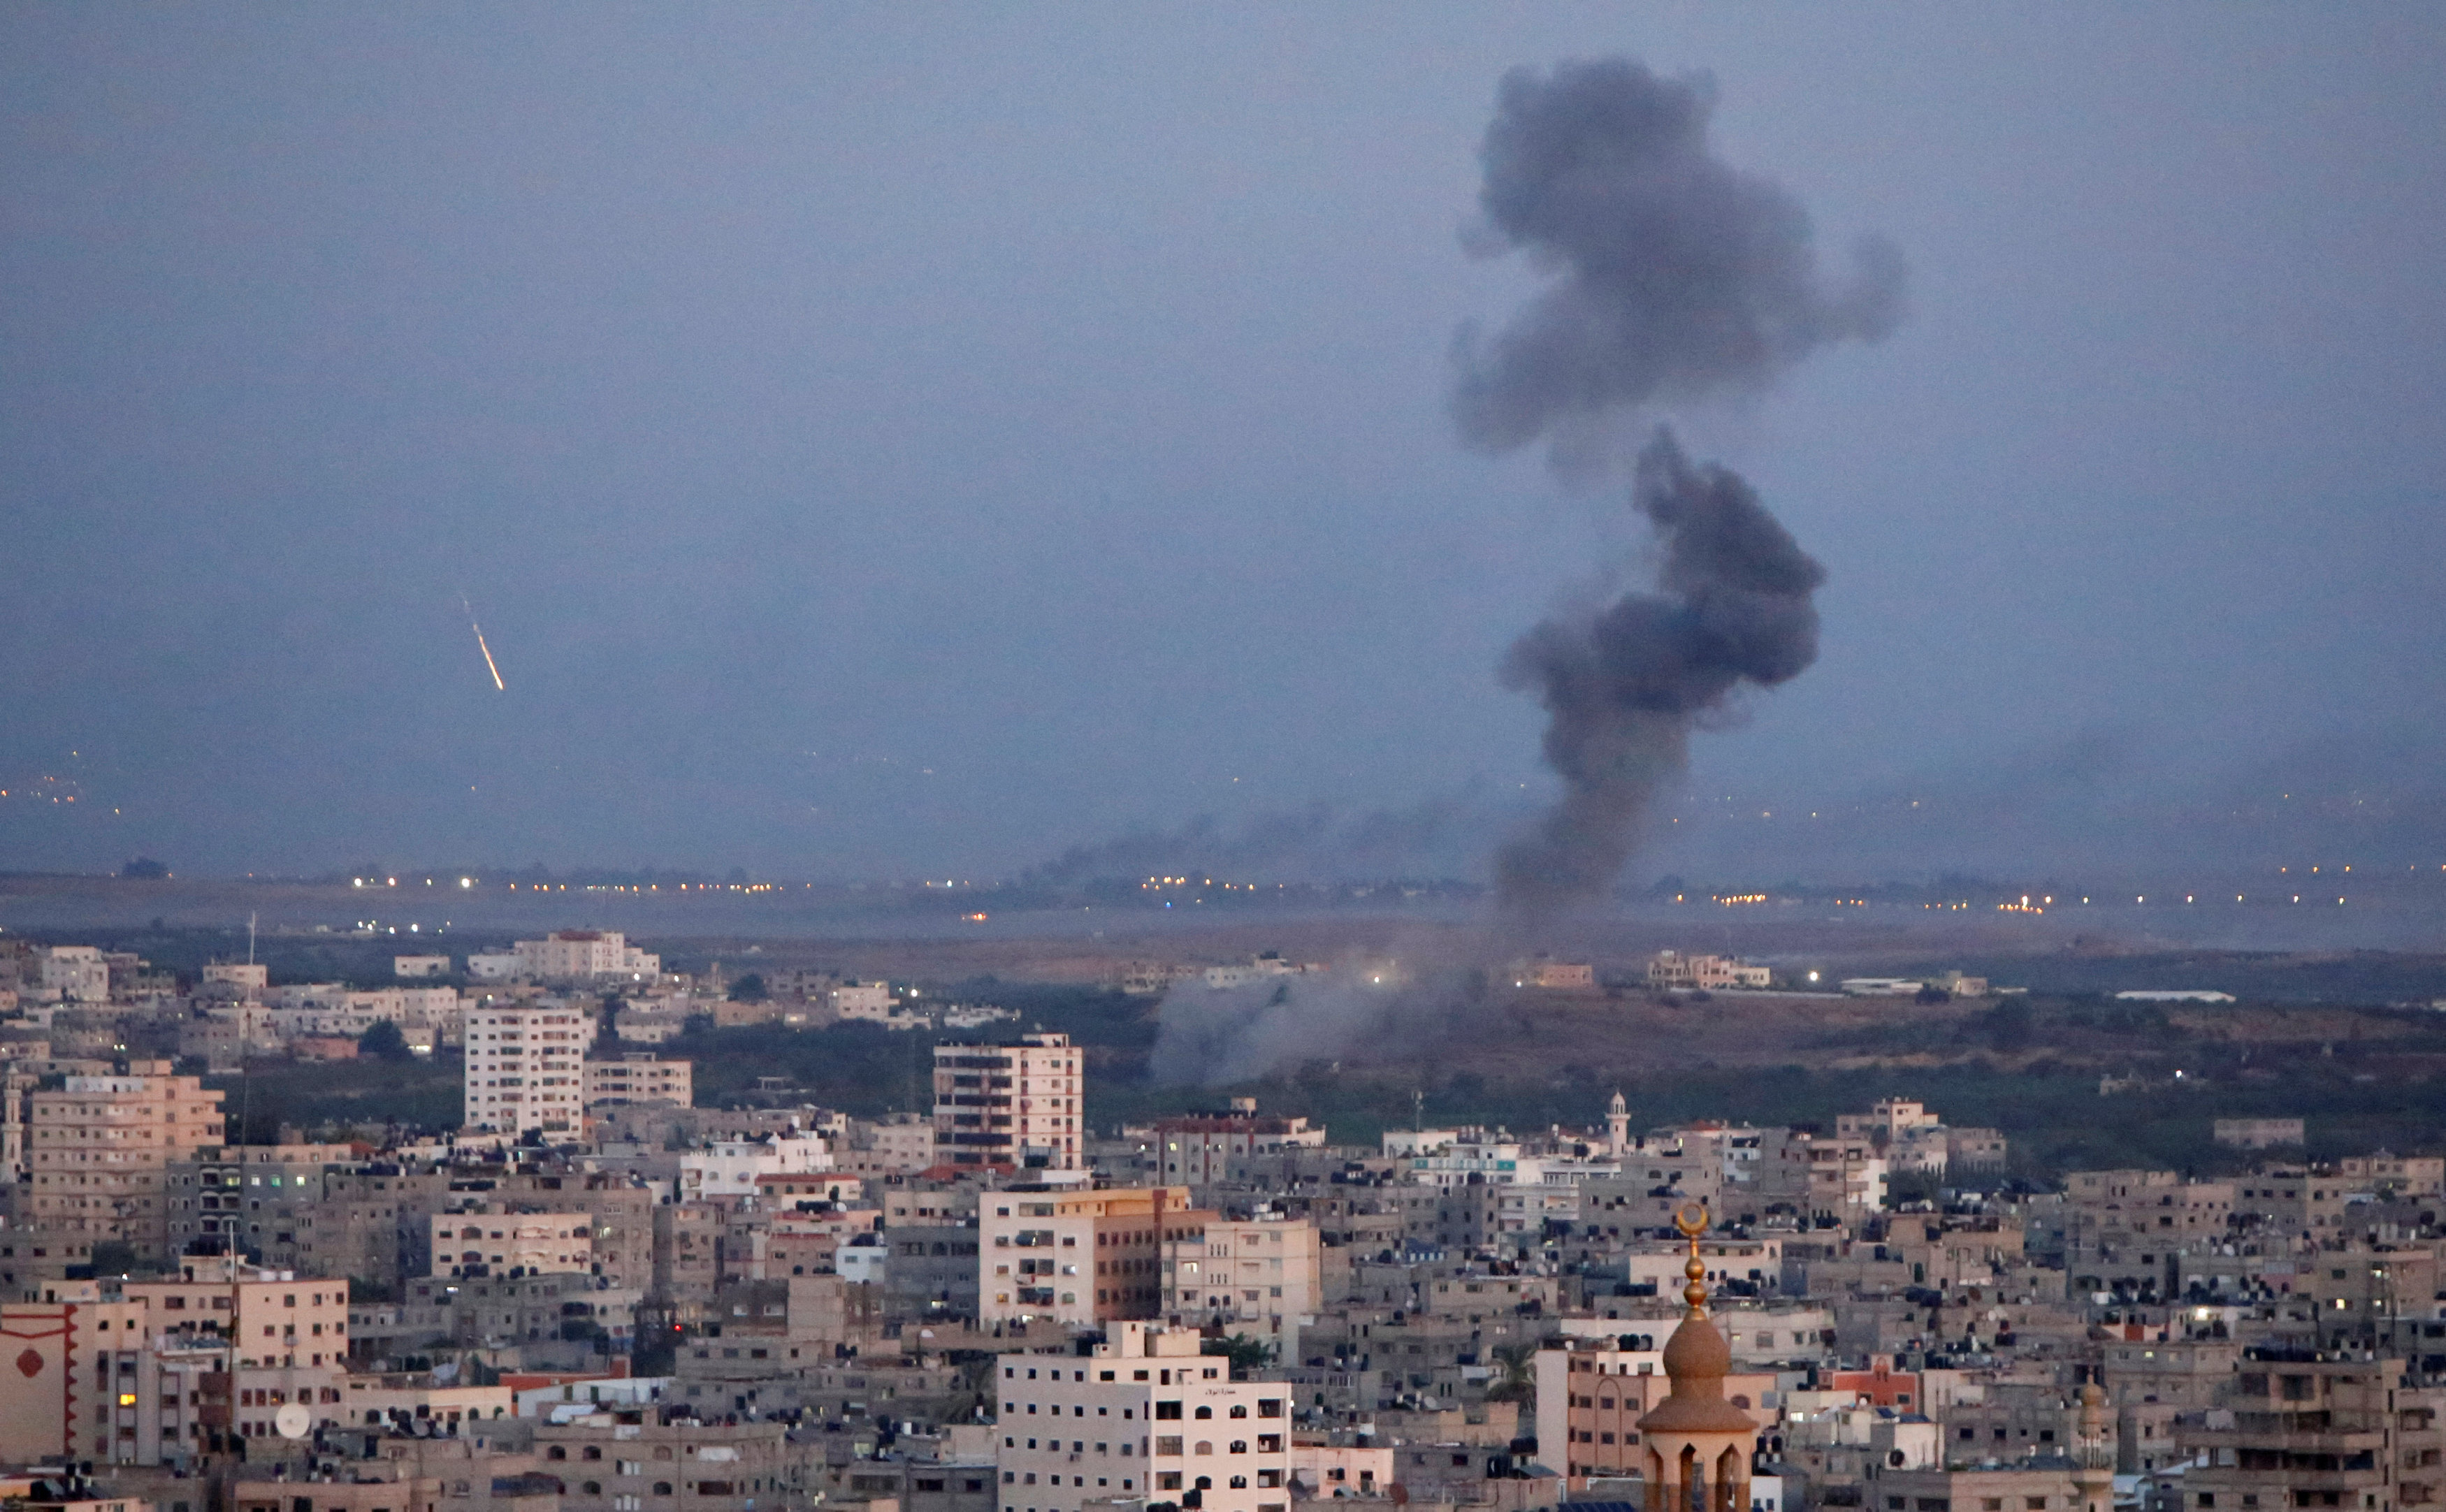 Vista desde Franja de Gaza. (Photo by REUTERS/Ahmed Zakot)